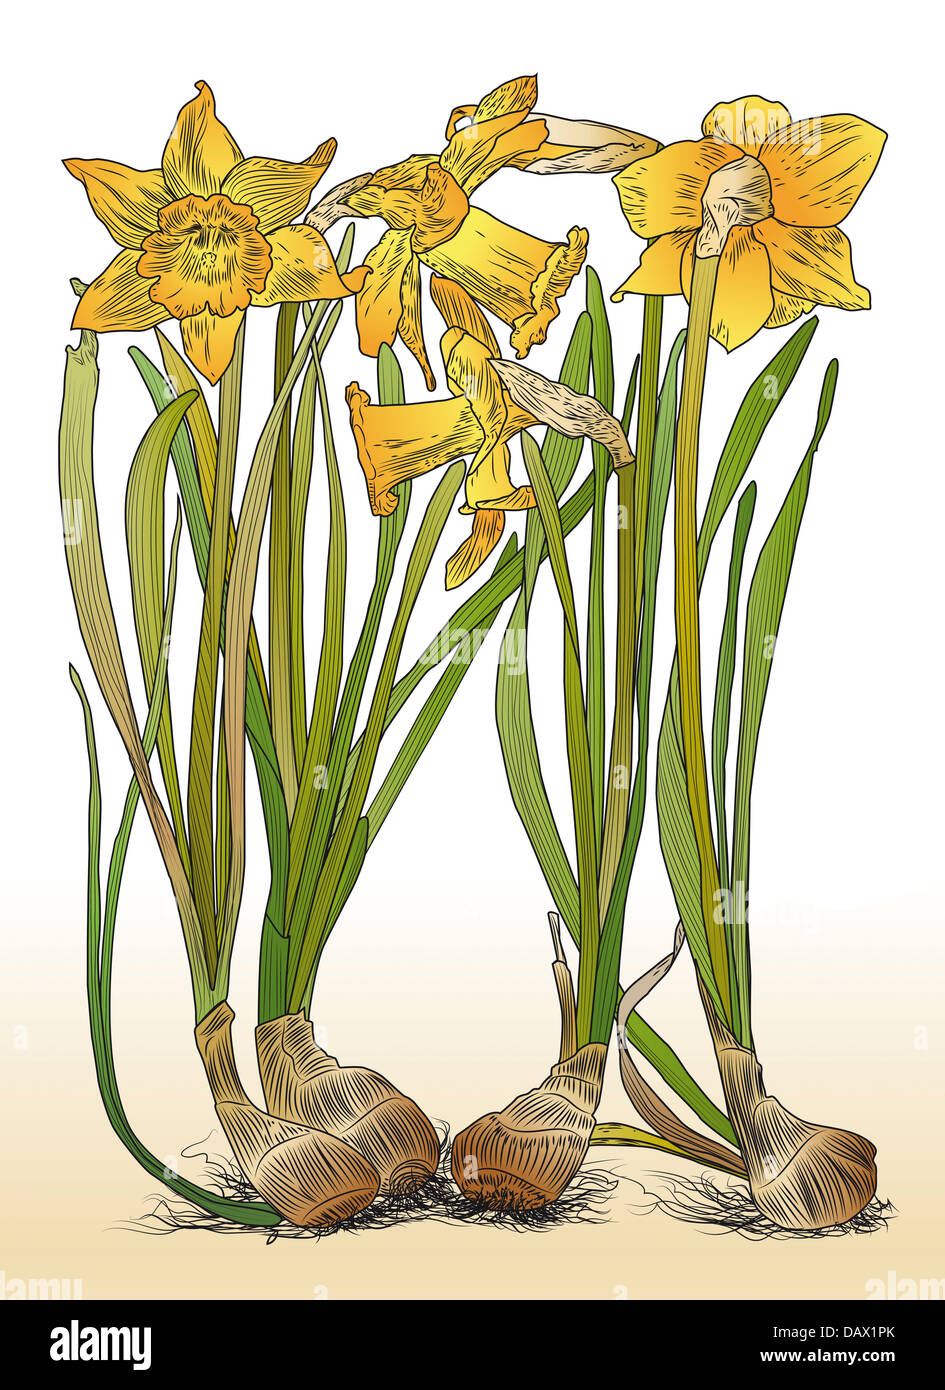 Color illustration of daffodils with bulbs in nineteenth-century style - Stock Image